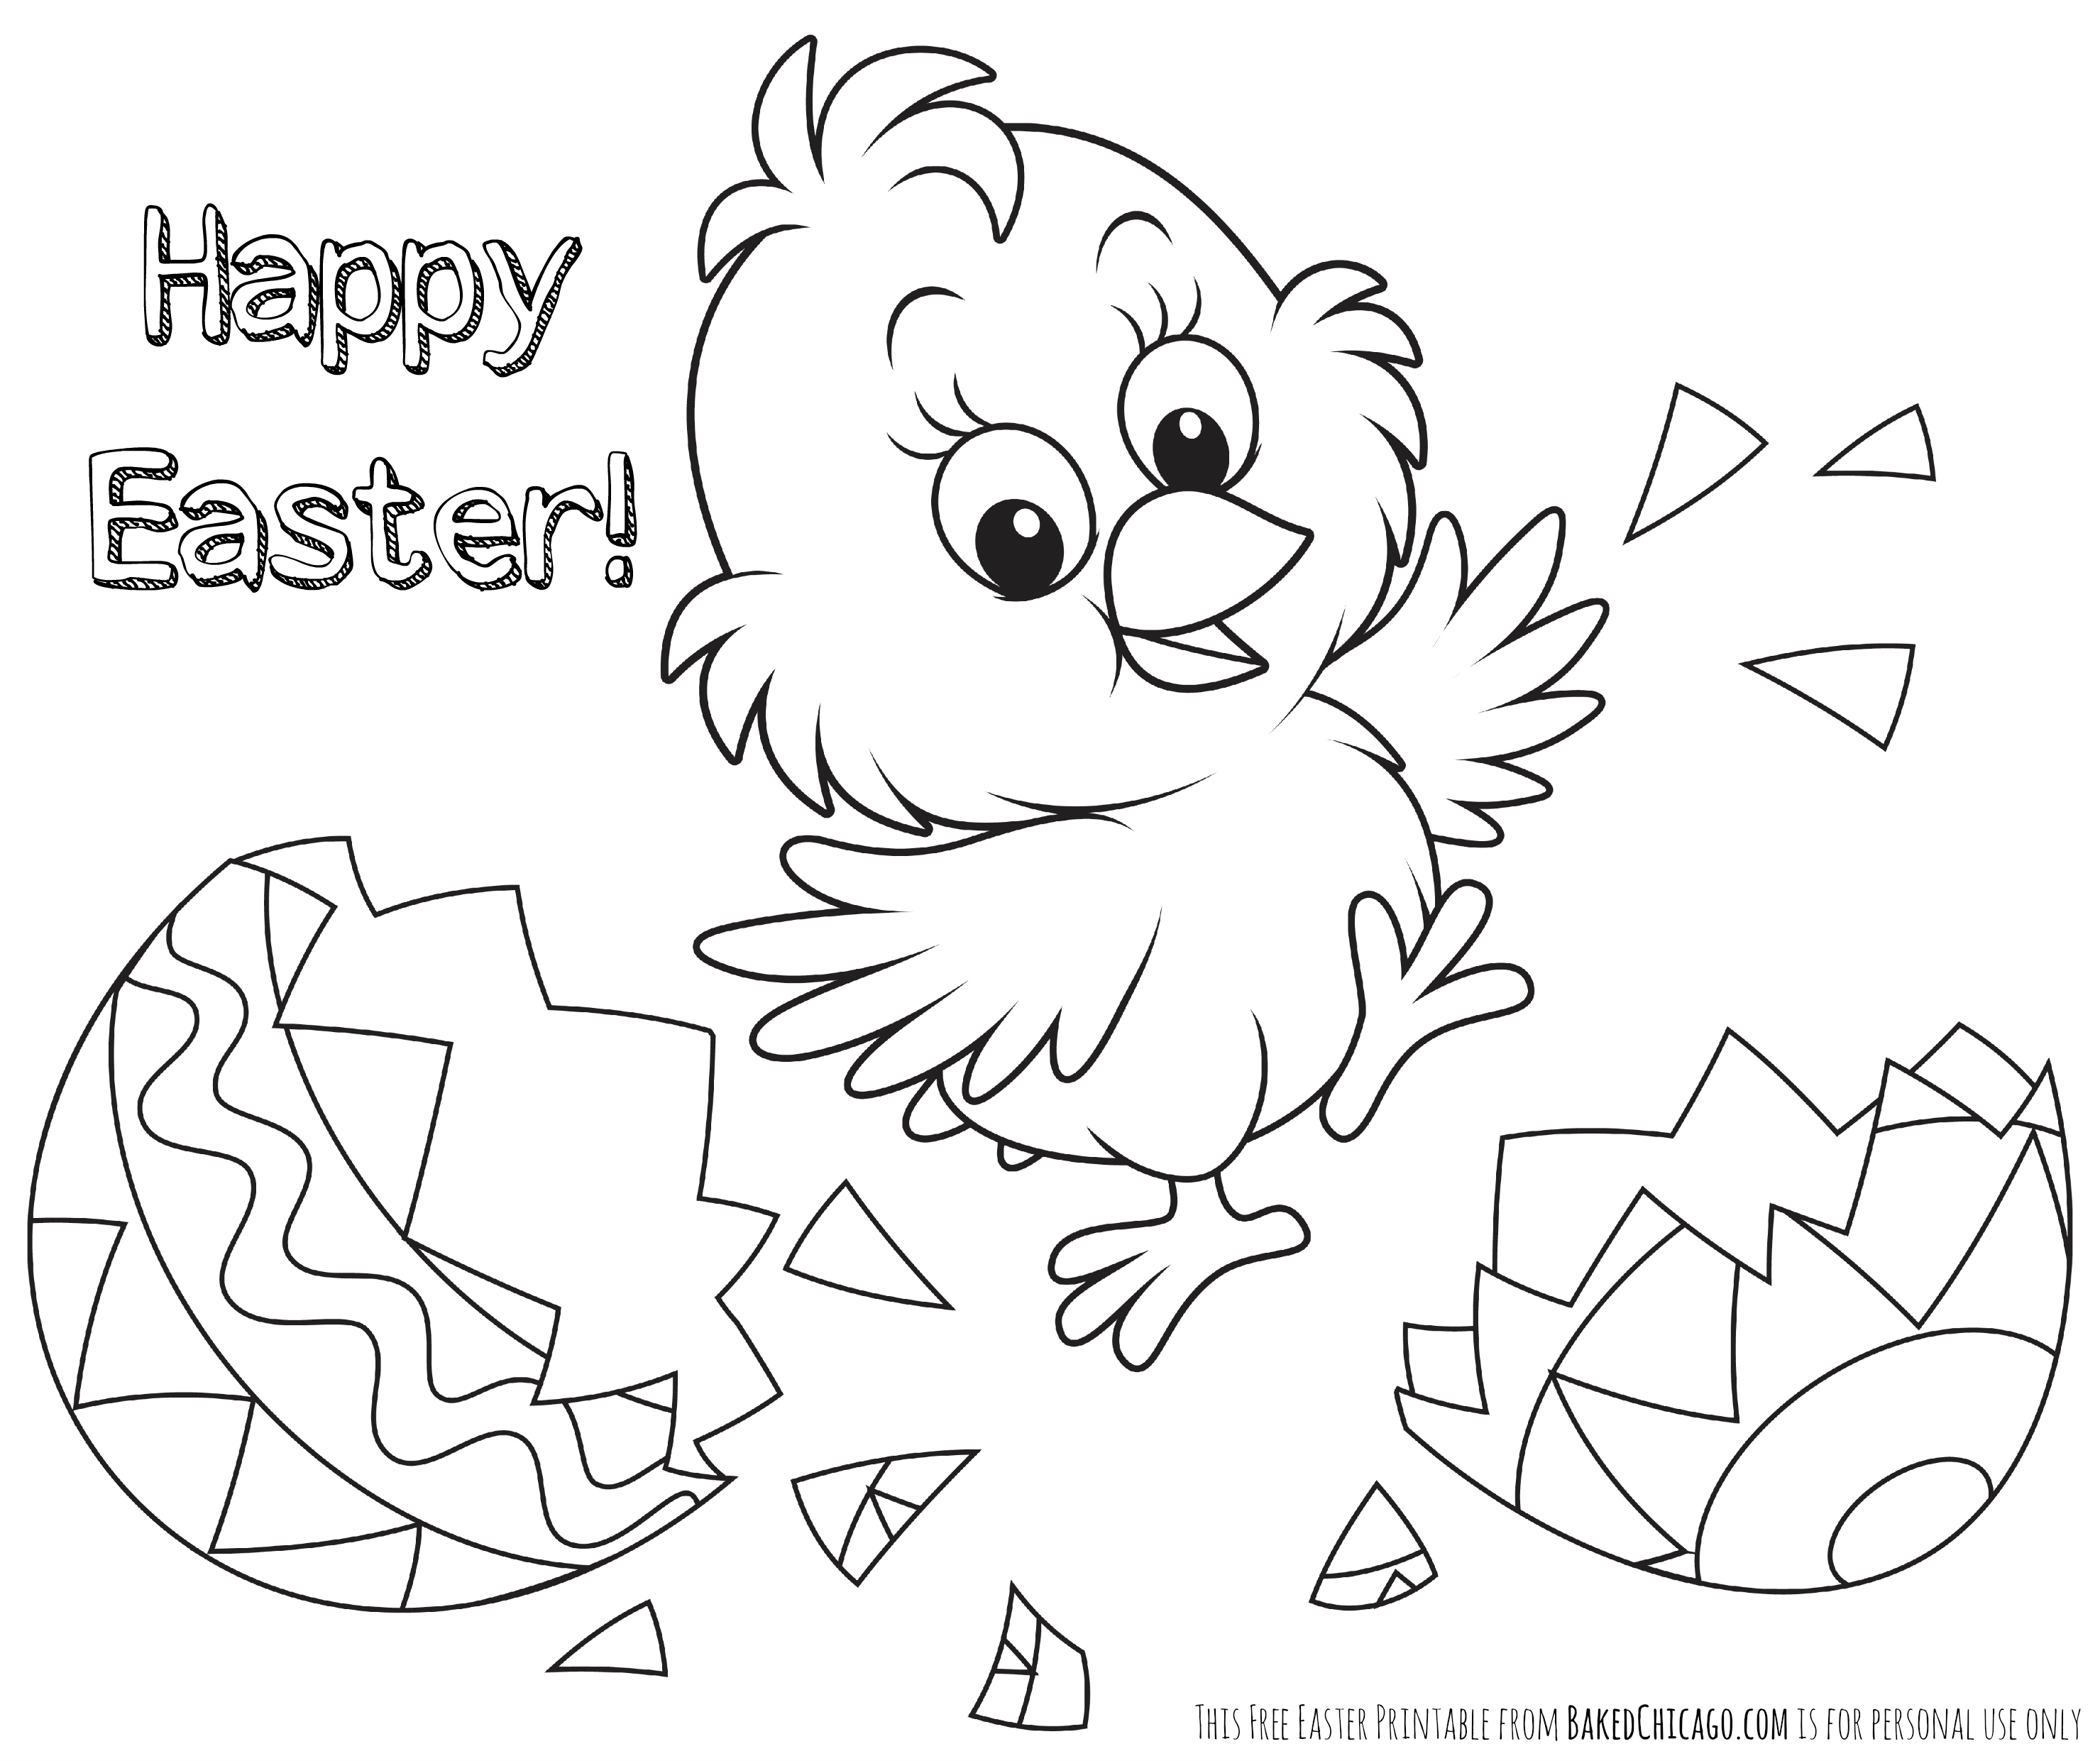 8 best images of lego easter printables free printable for Easter free coloring pages printable